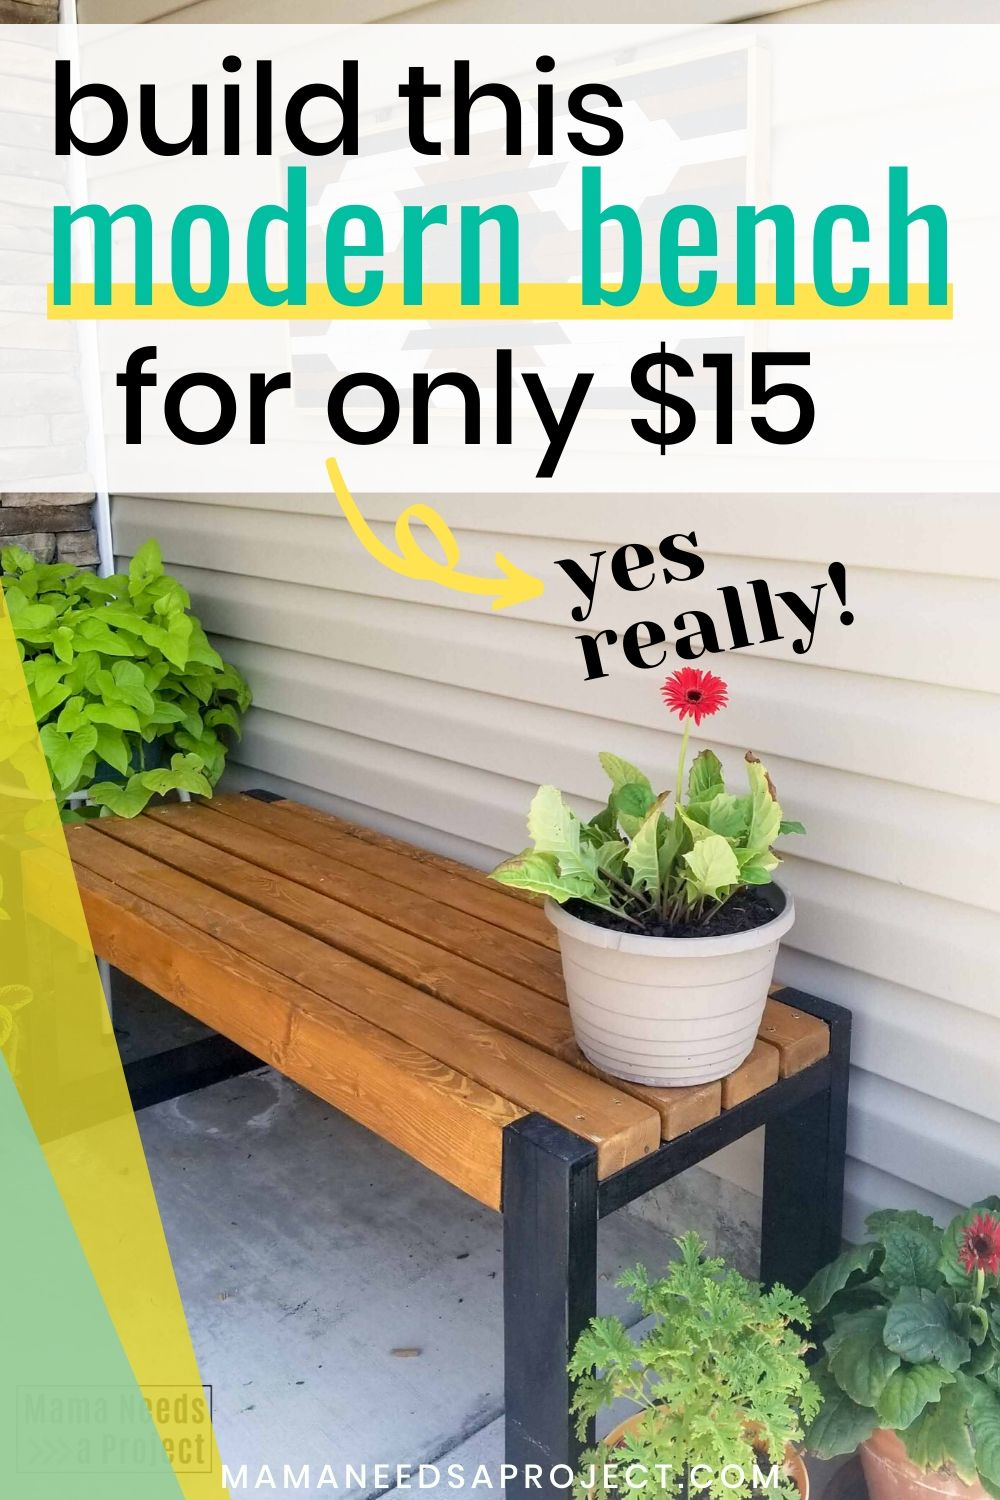 build this modern bench for only $15